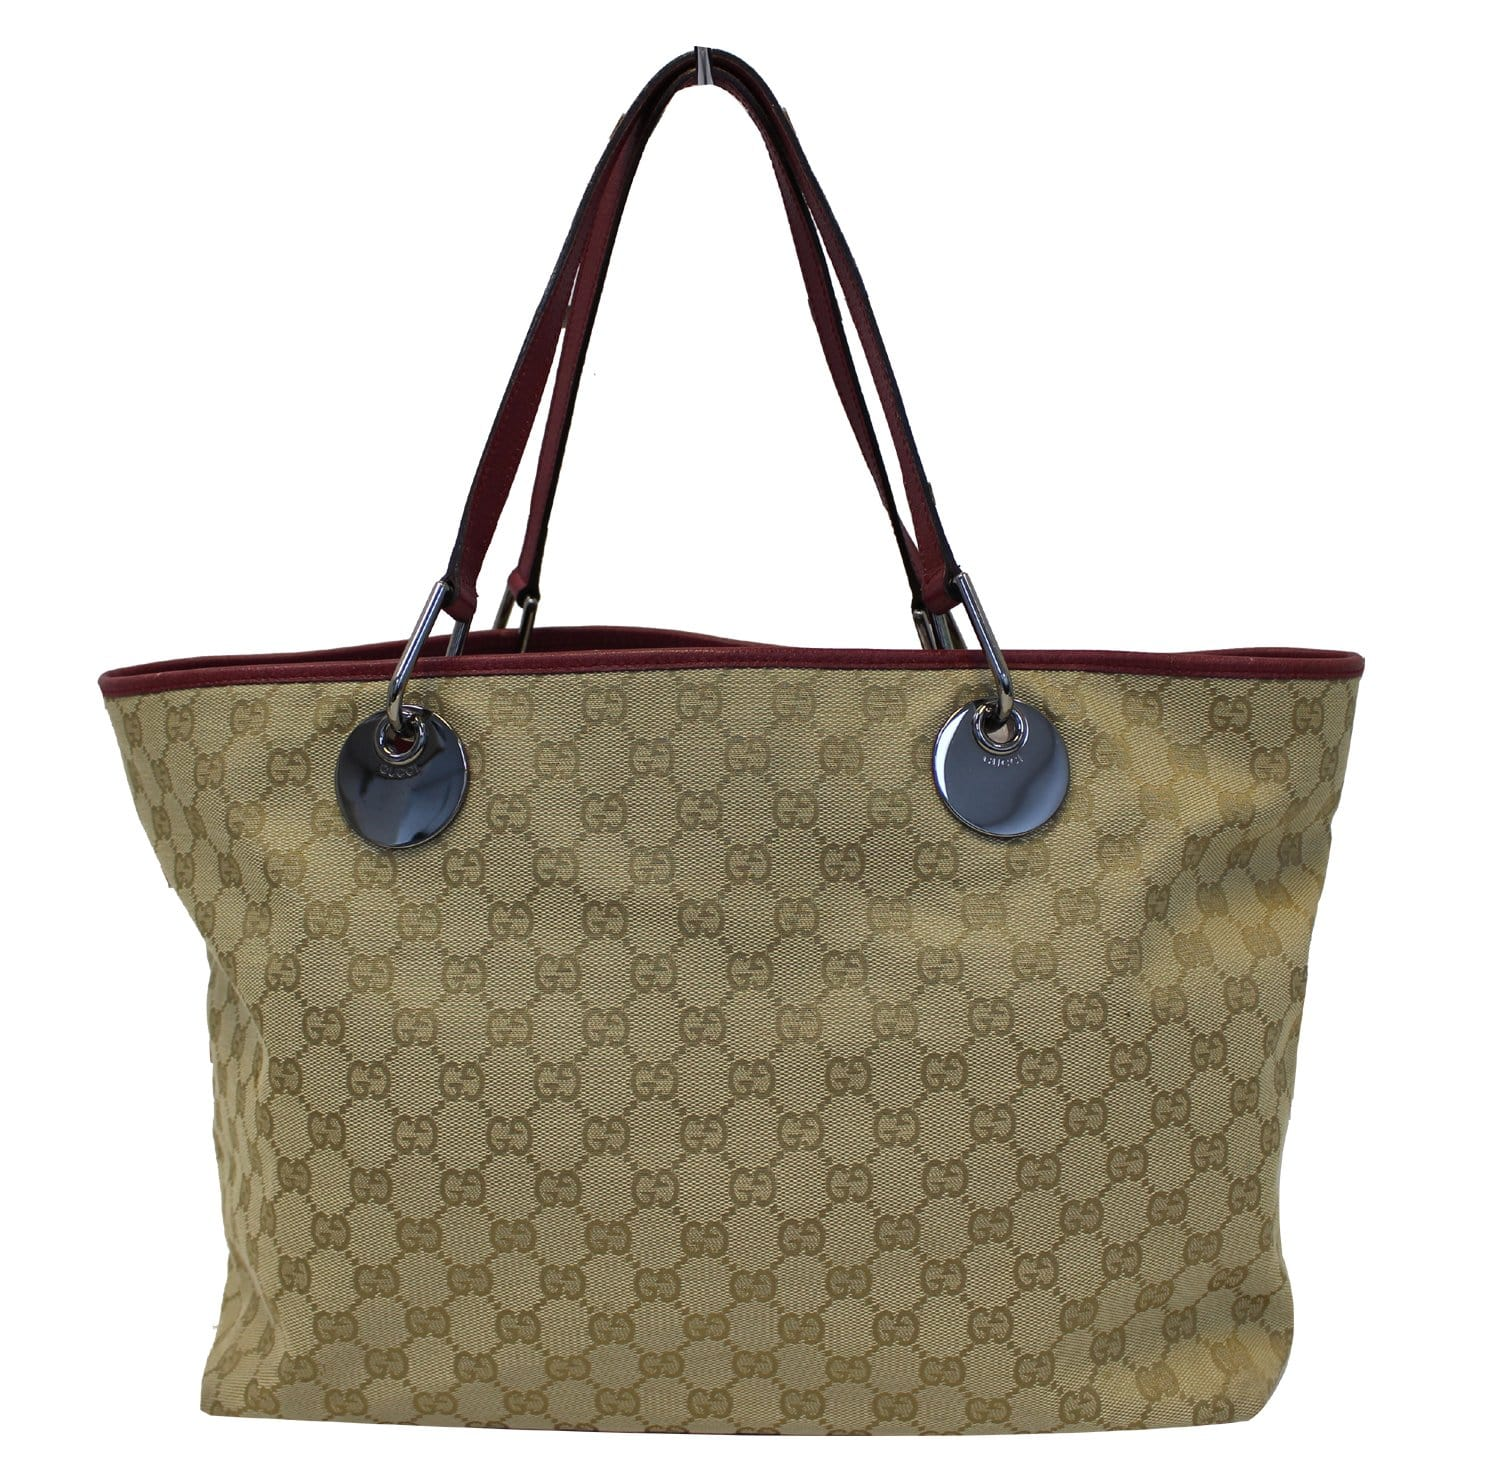 bdecd16d450b Authentic GUCCI Eclipse Beige Red GG Canvas Leather Tote Bag TT1830